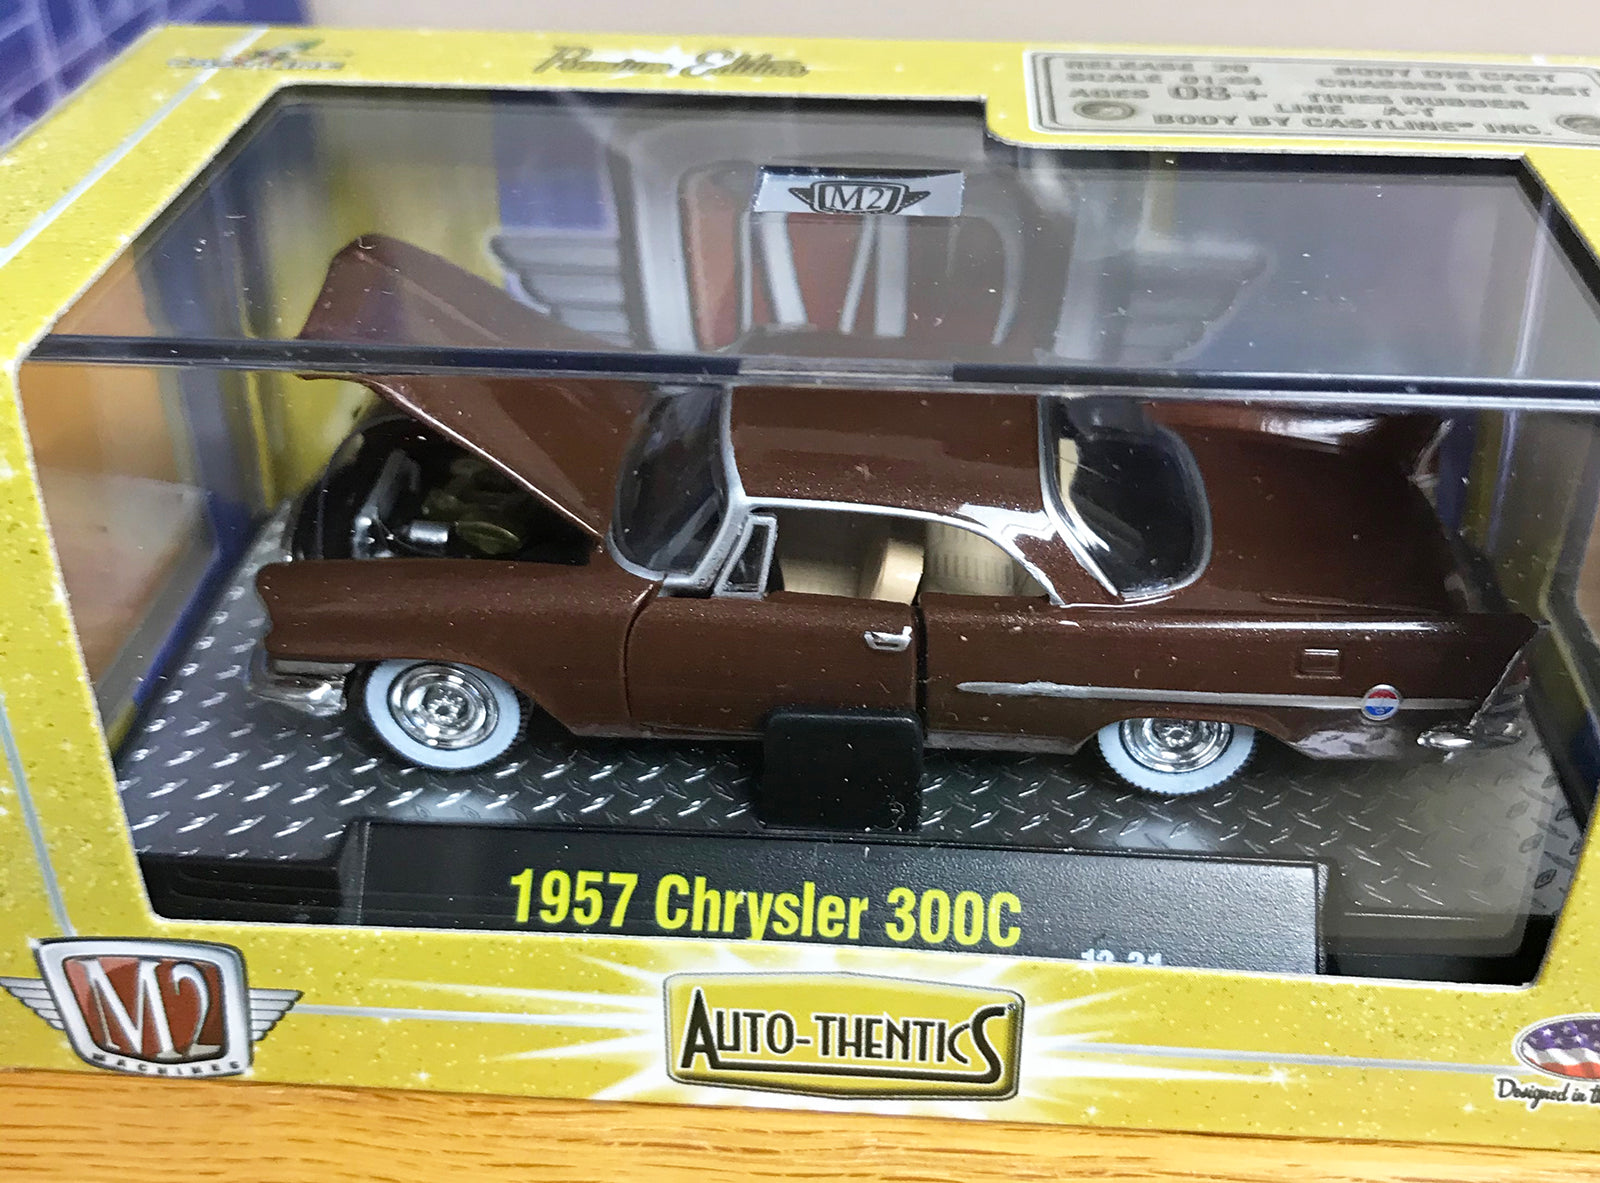 S 1957 Chrysler 300C - Brown